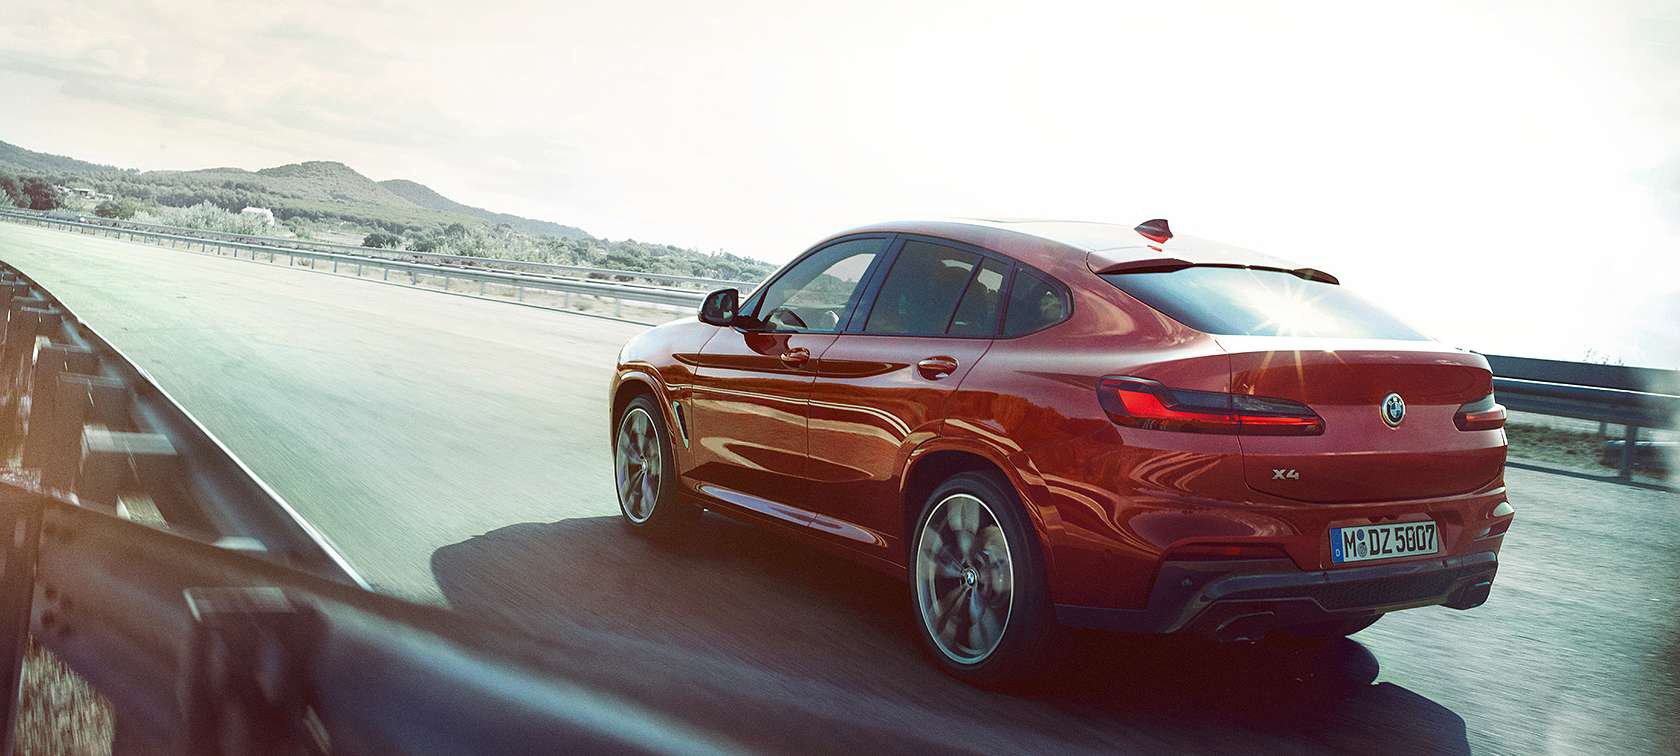 The all-new BMW X4 in action